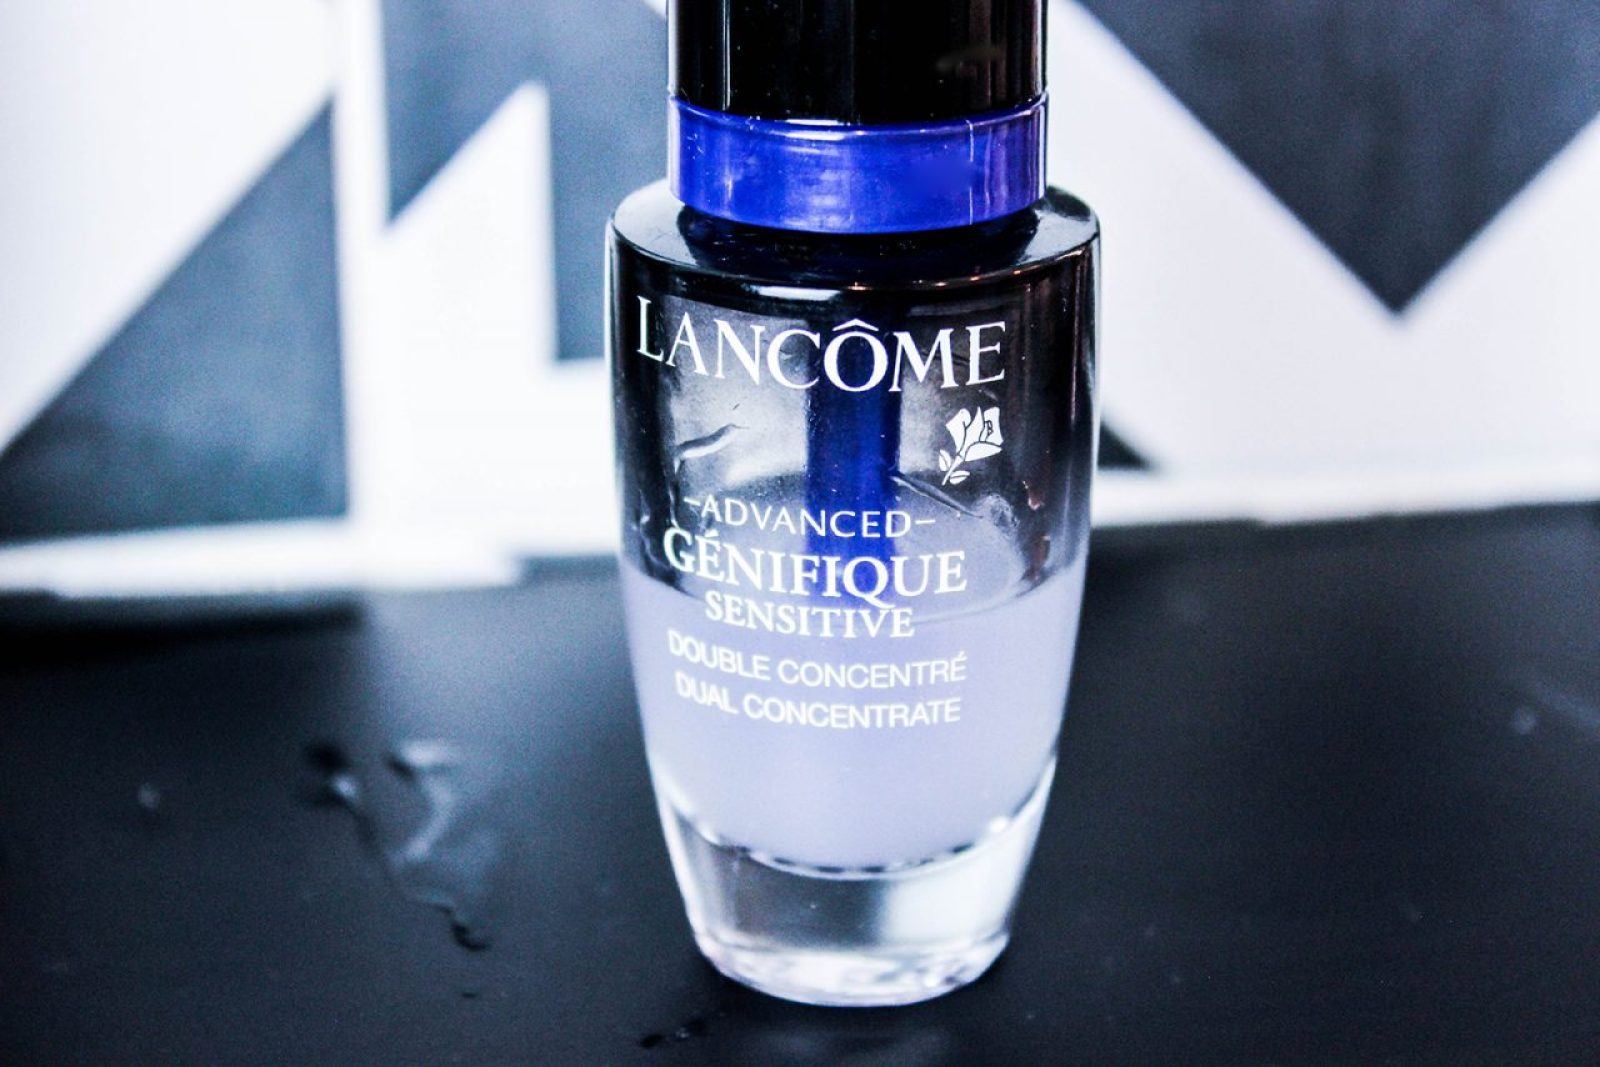 lancome-Serum-Genifique Sensitive-14